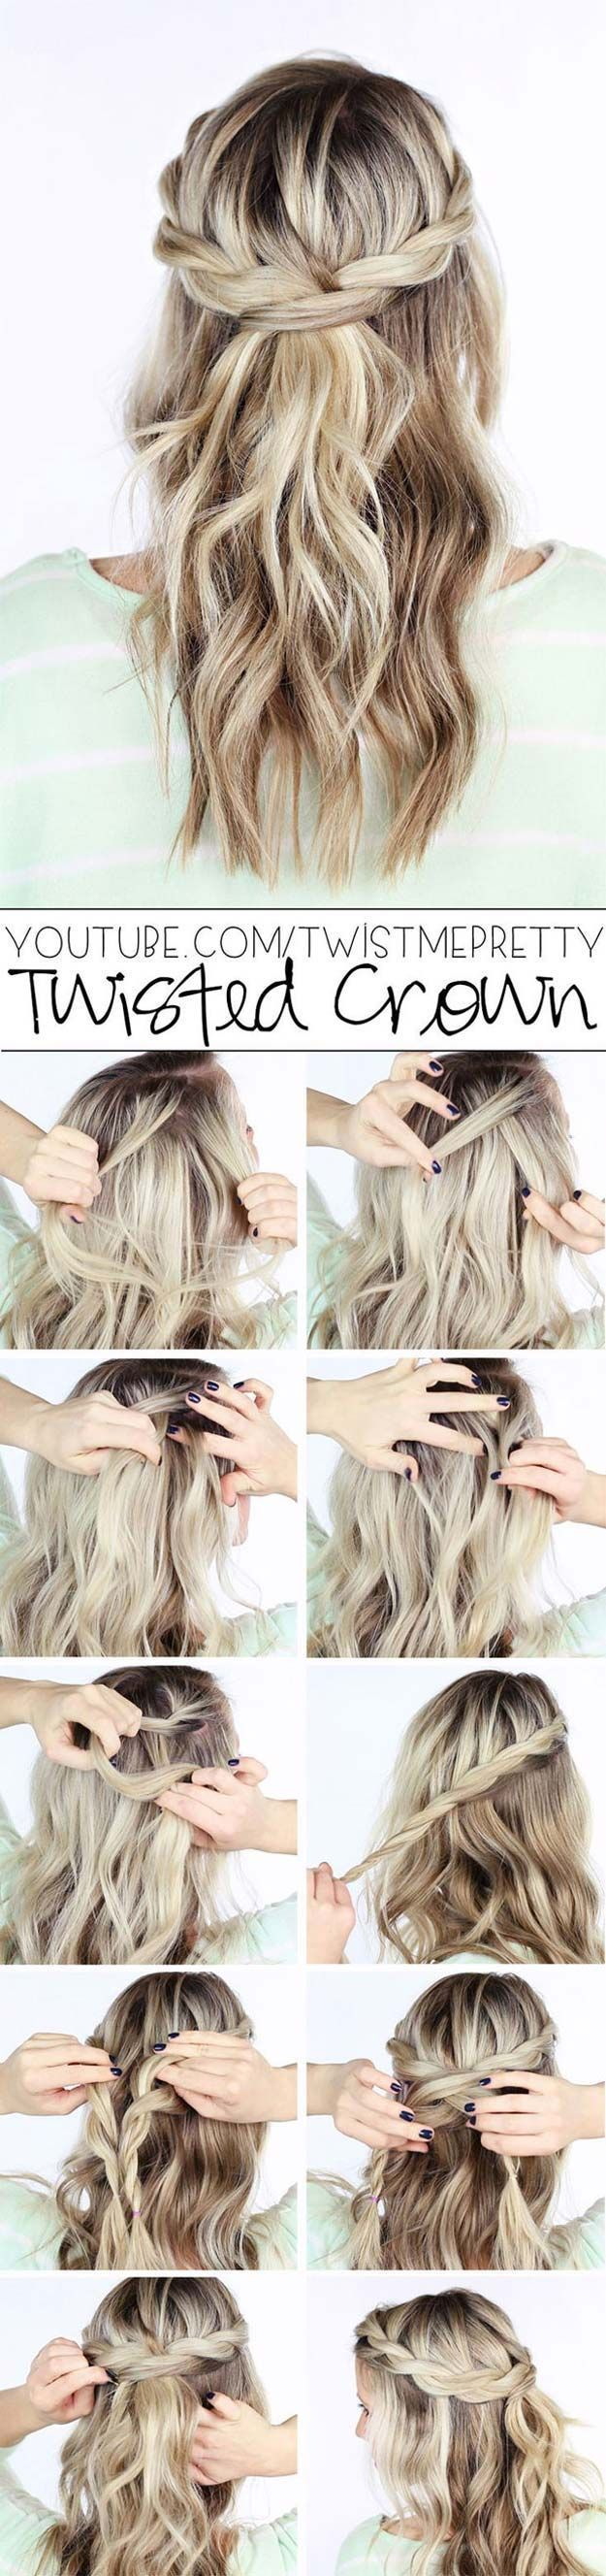 Cool and easy diy hairstyles twisted crown braid quick and easy